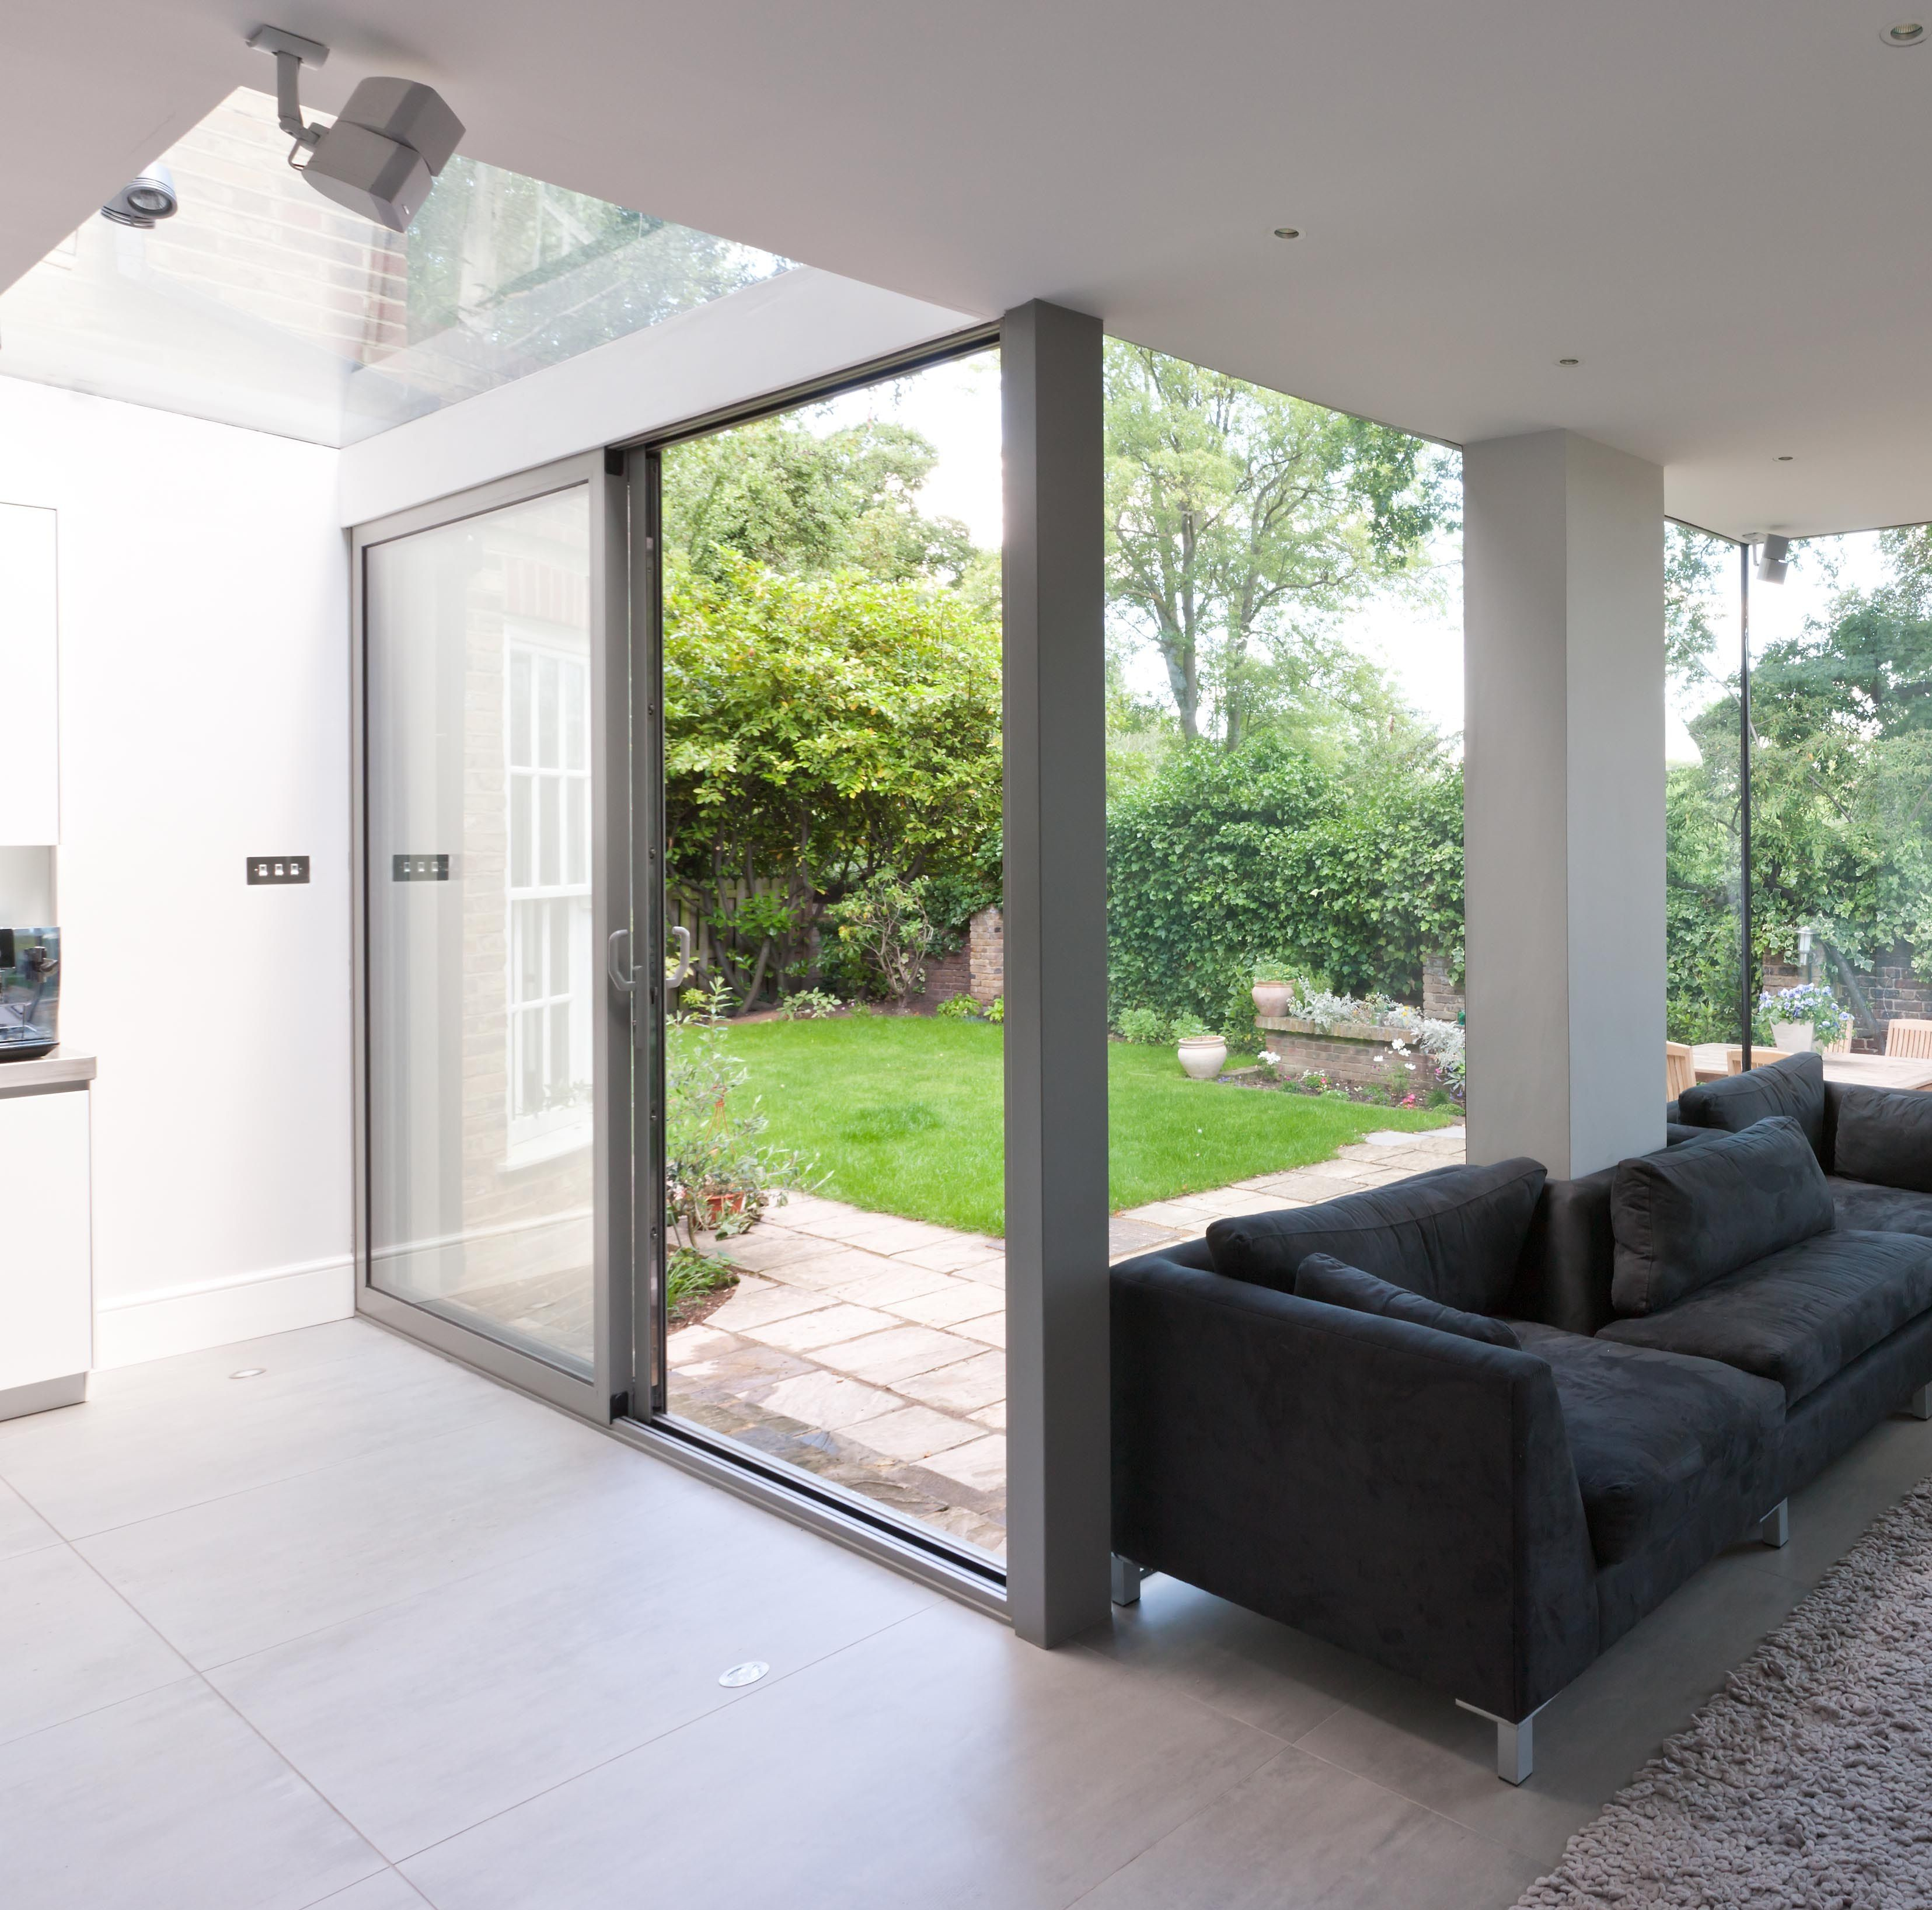 A Frameless Glass Corner Window Sliding Aluminium Doors And Glass Roof Architecture Modern Roofing Roof Architecture